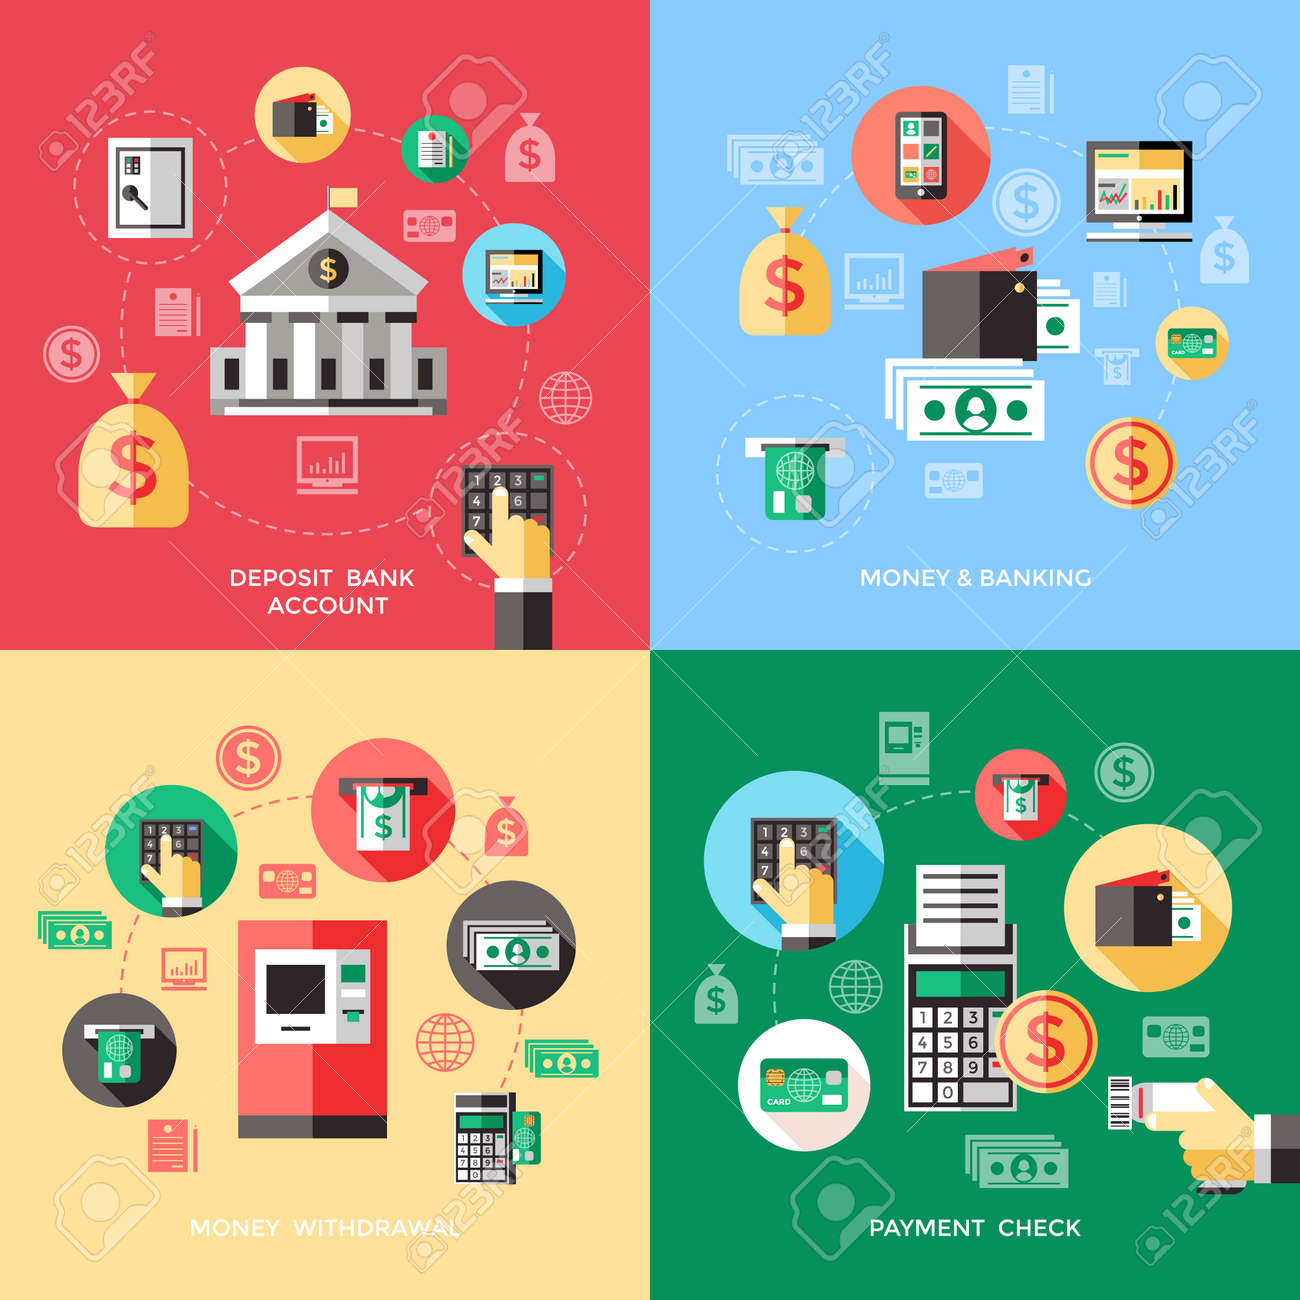 Bank services concept with deposit account payment check withdrawal of money financial operations isolated vector illustration - 166662382